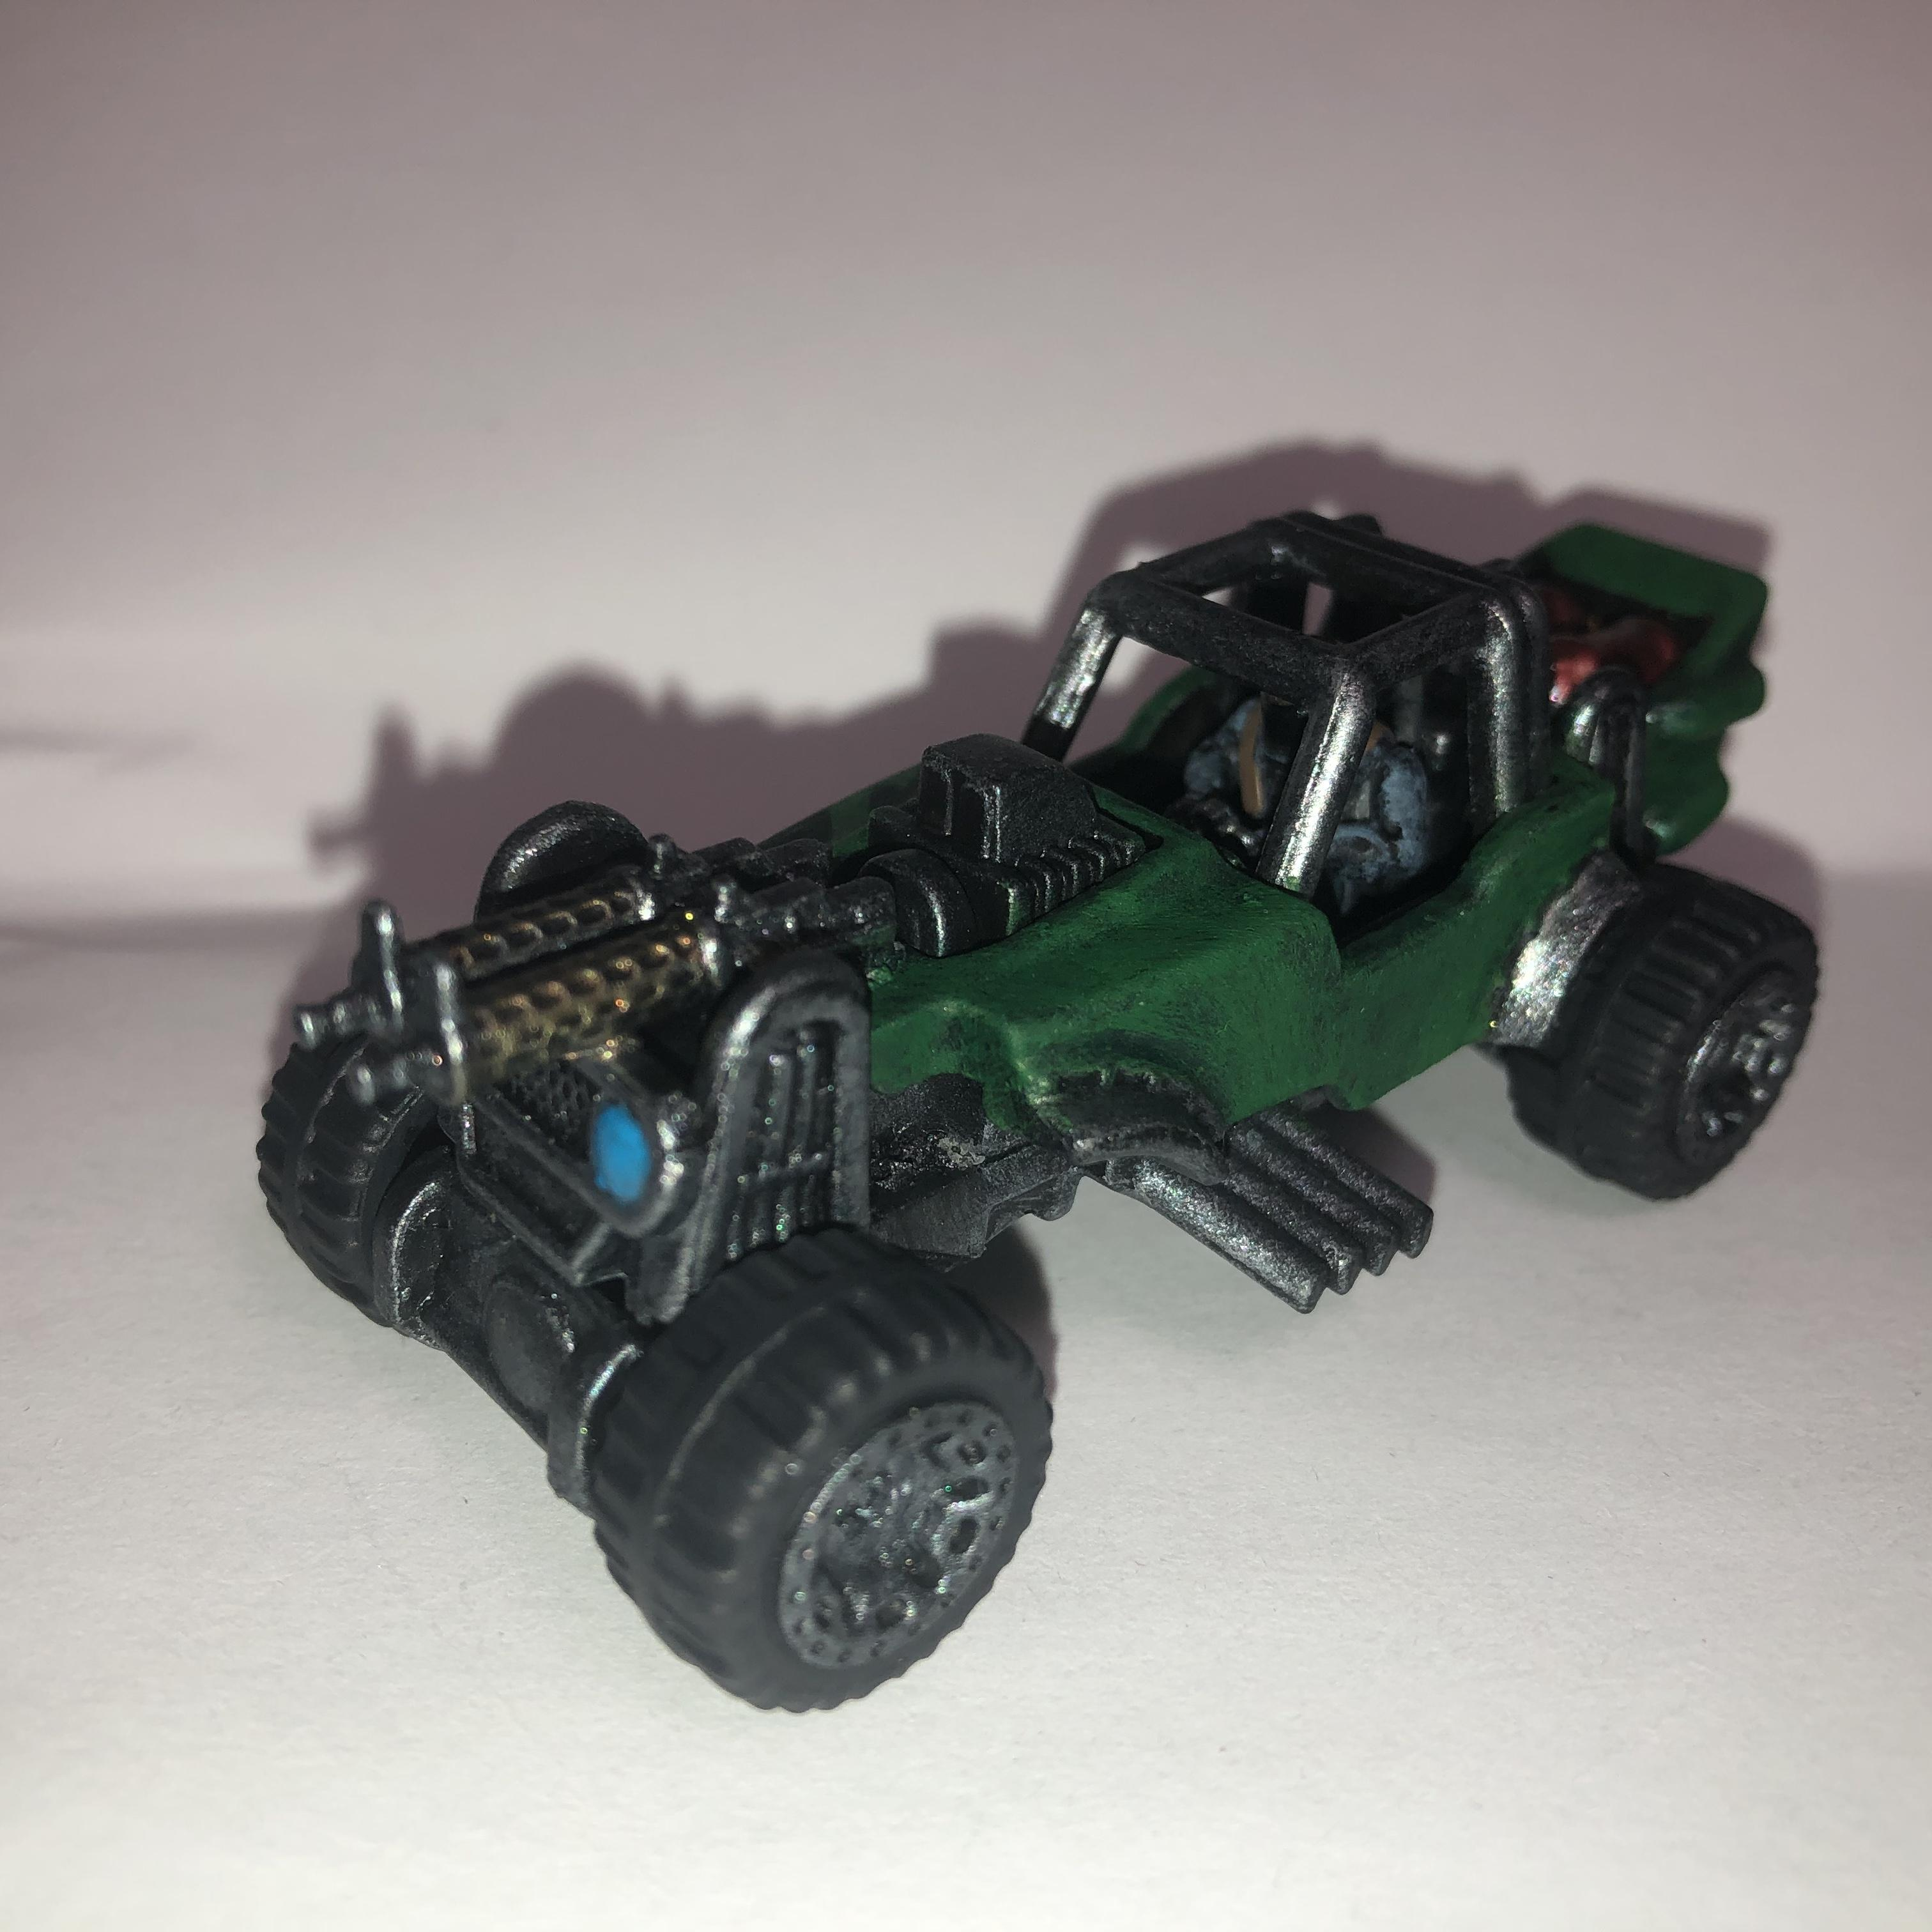 Buggy, Cars, Conversion, Gaslands, Mad Max, Post Apocalyptic